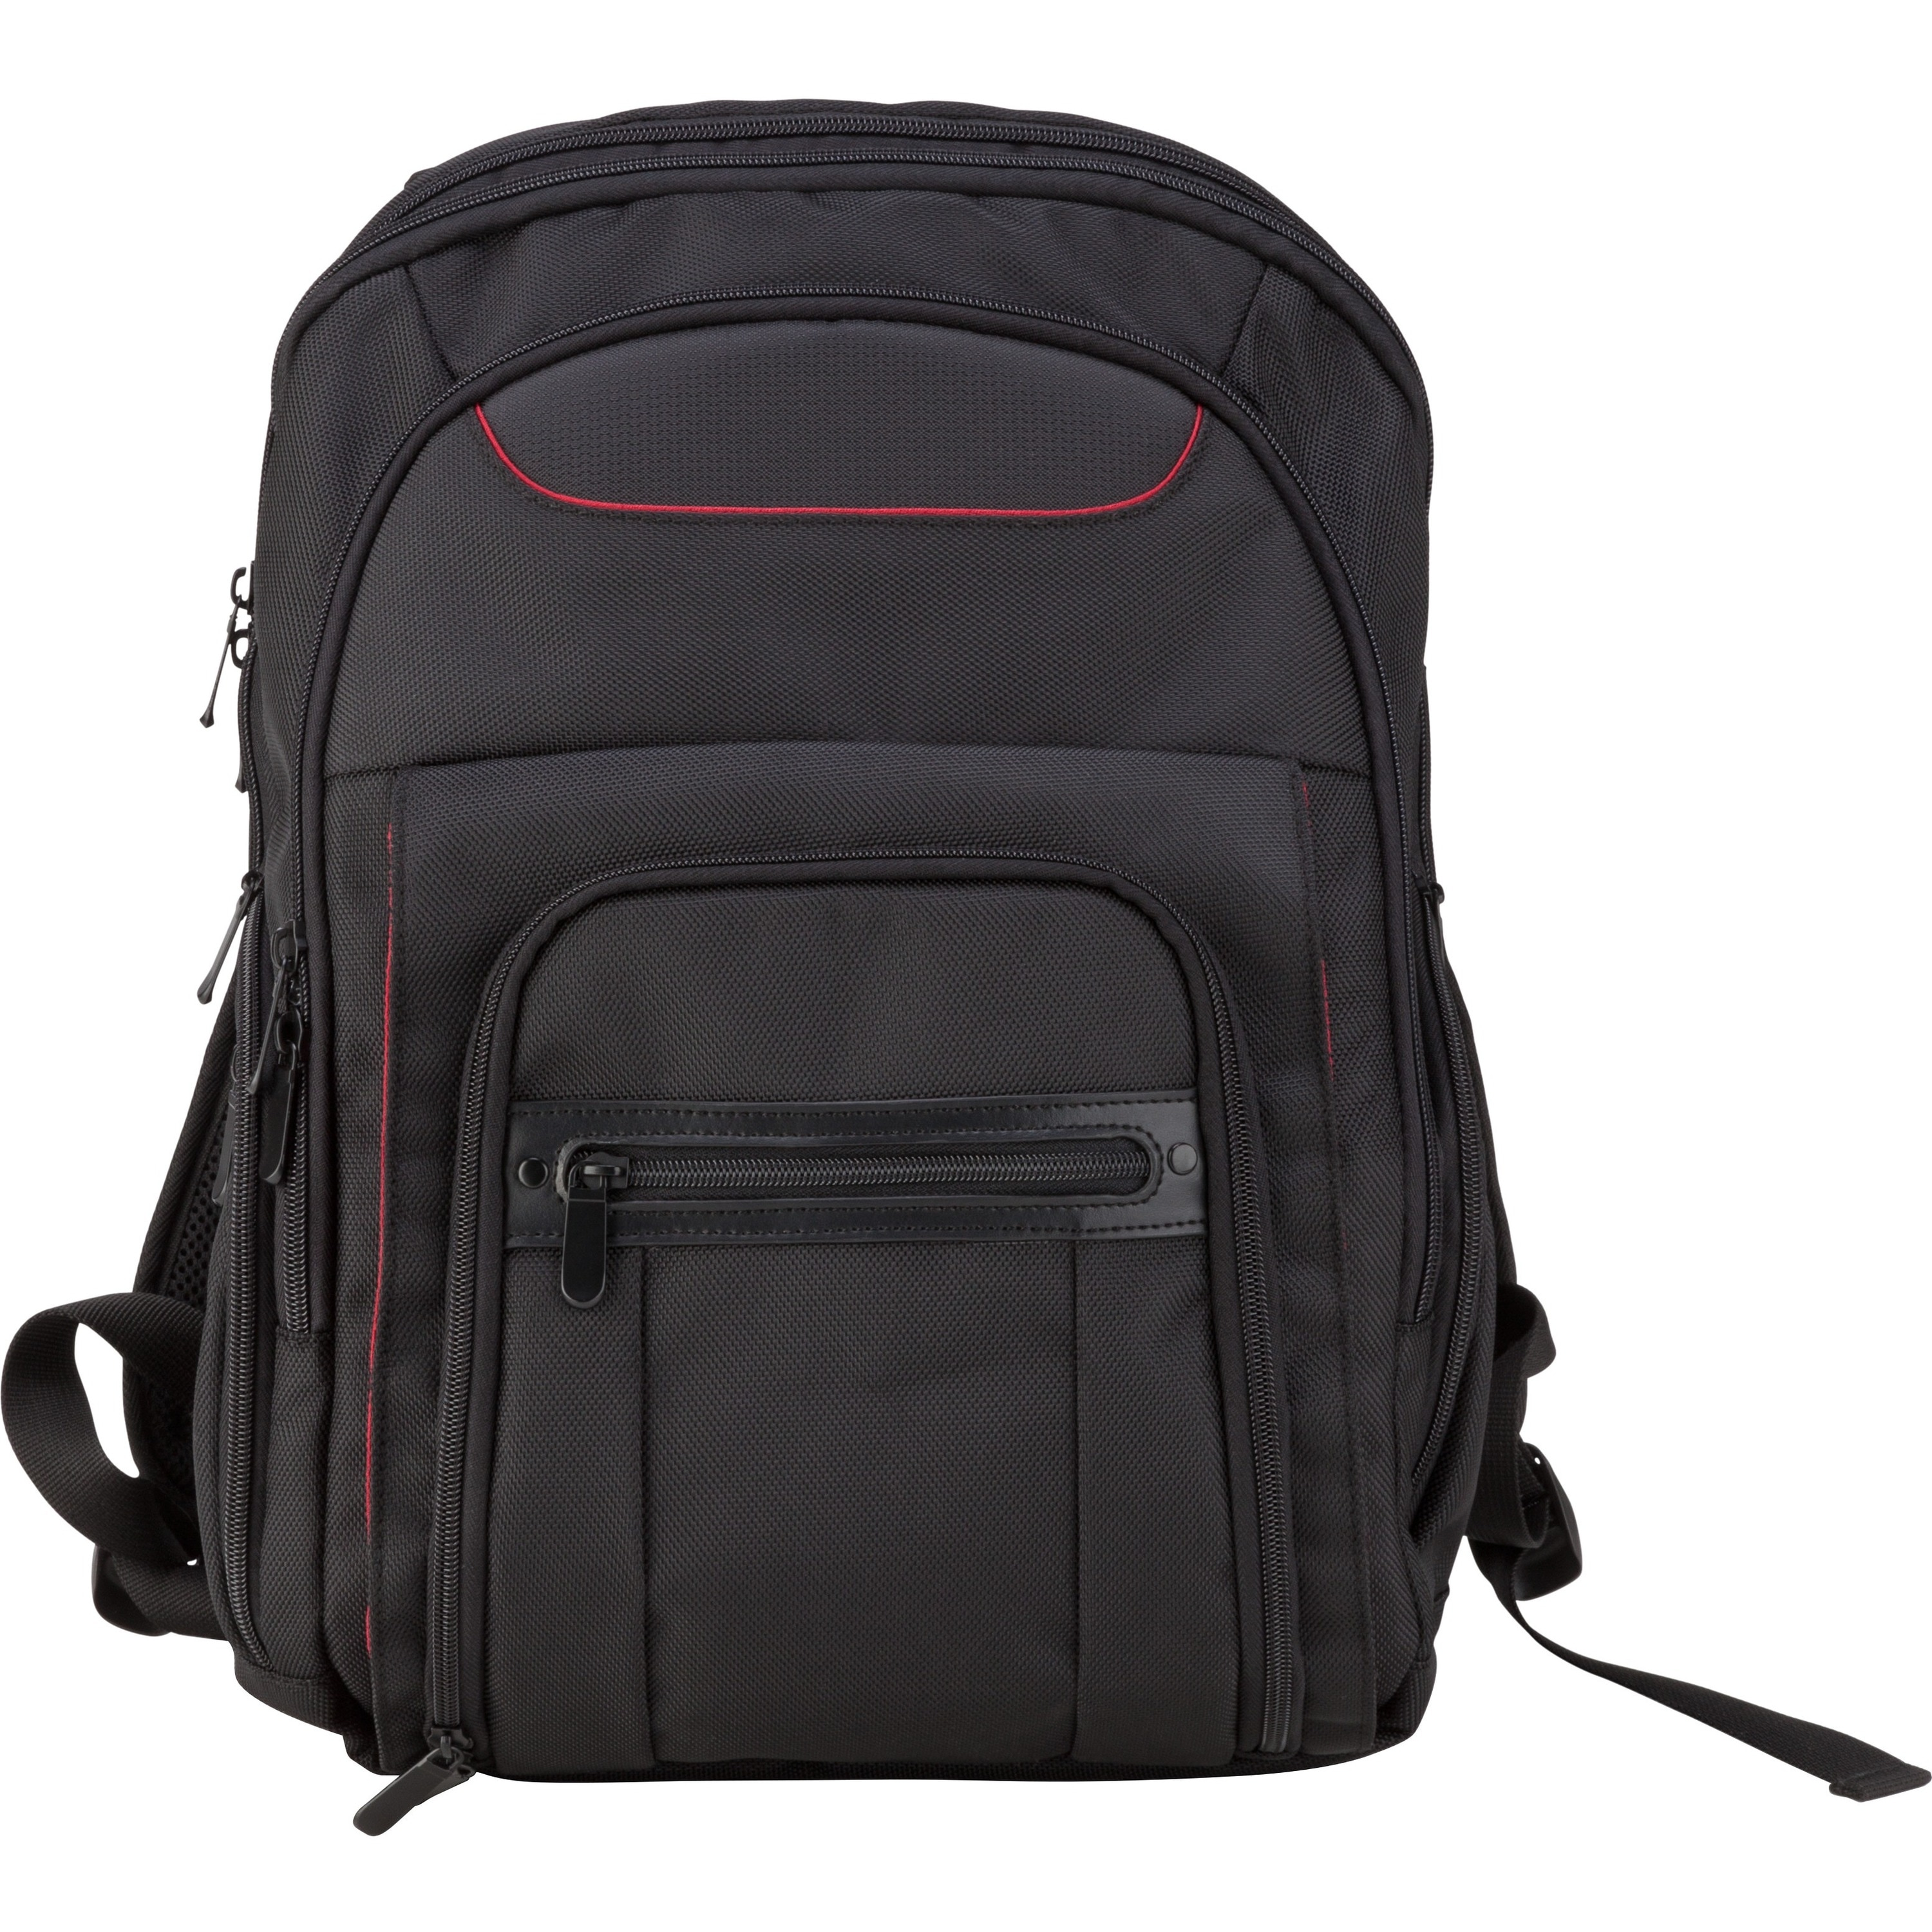 "Toshiba Envoy 2 Carrying Case (Backpack) for 14"" Notebook"